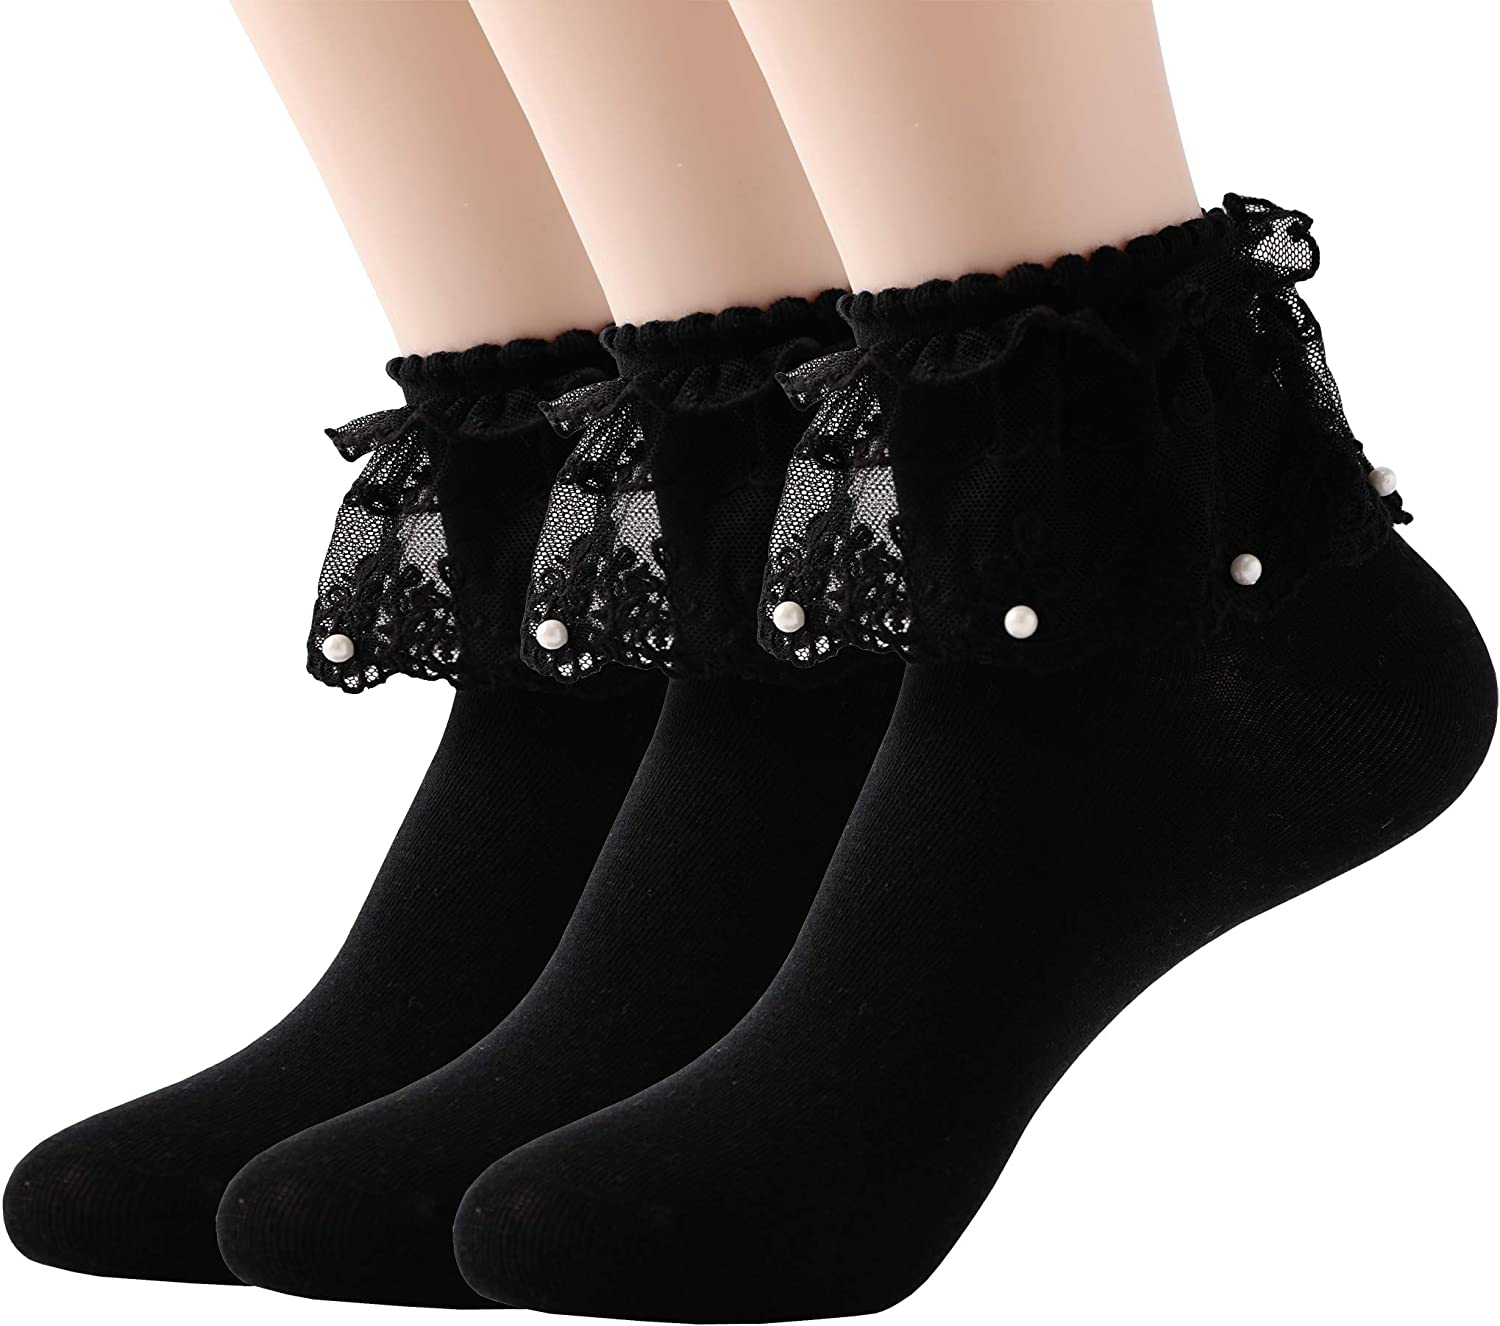 6 3 9 or 12 Pairs Girls Kids Cute LACE Ankle Socks School White Frilly Lace Daily Use All Sizes